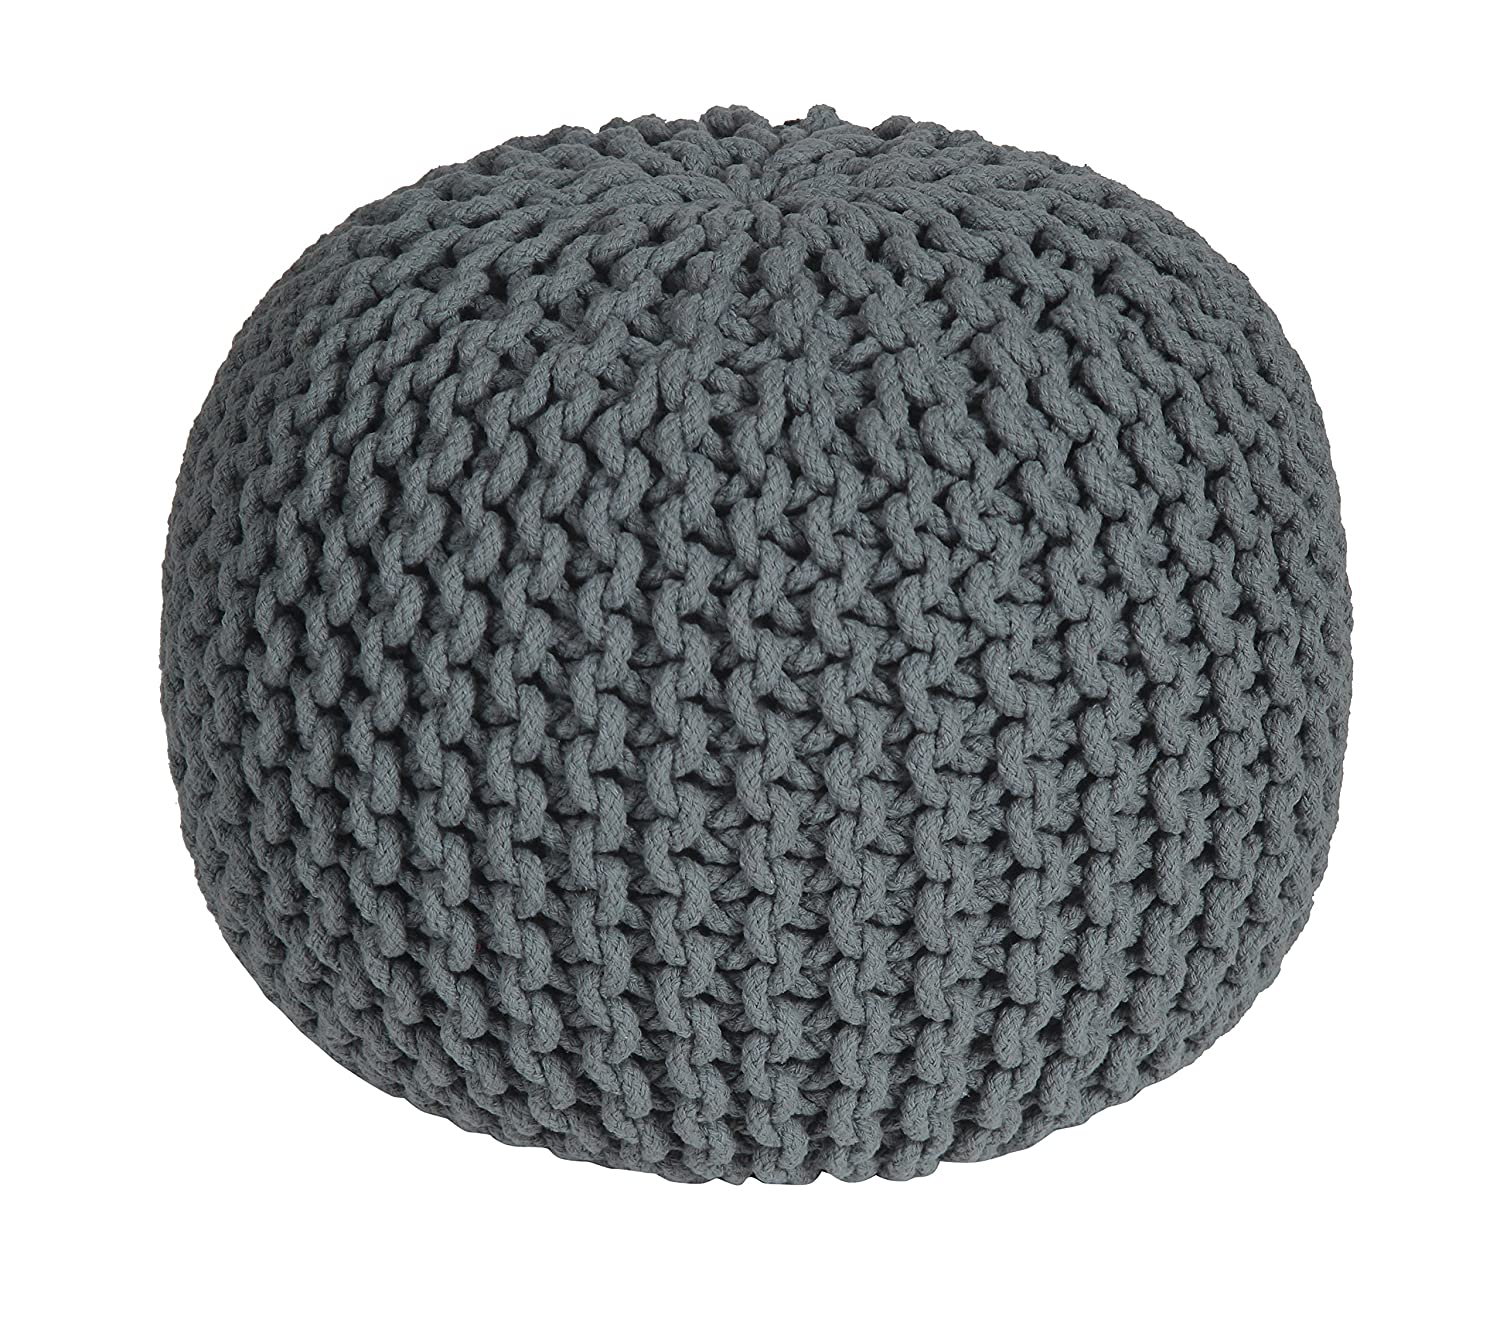 Square handcrafted moroccan leather pouf dark tan pouf pouffe ottoman - Homescapes Grey Knitted Pouffe Footstool Bean Filled 100 Cotton For Living Room Children Or The Elderly